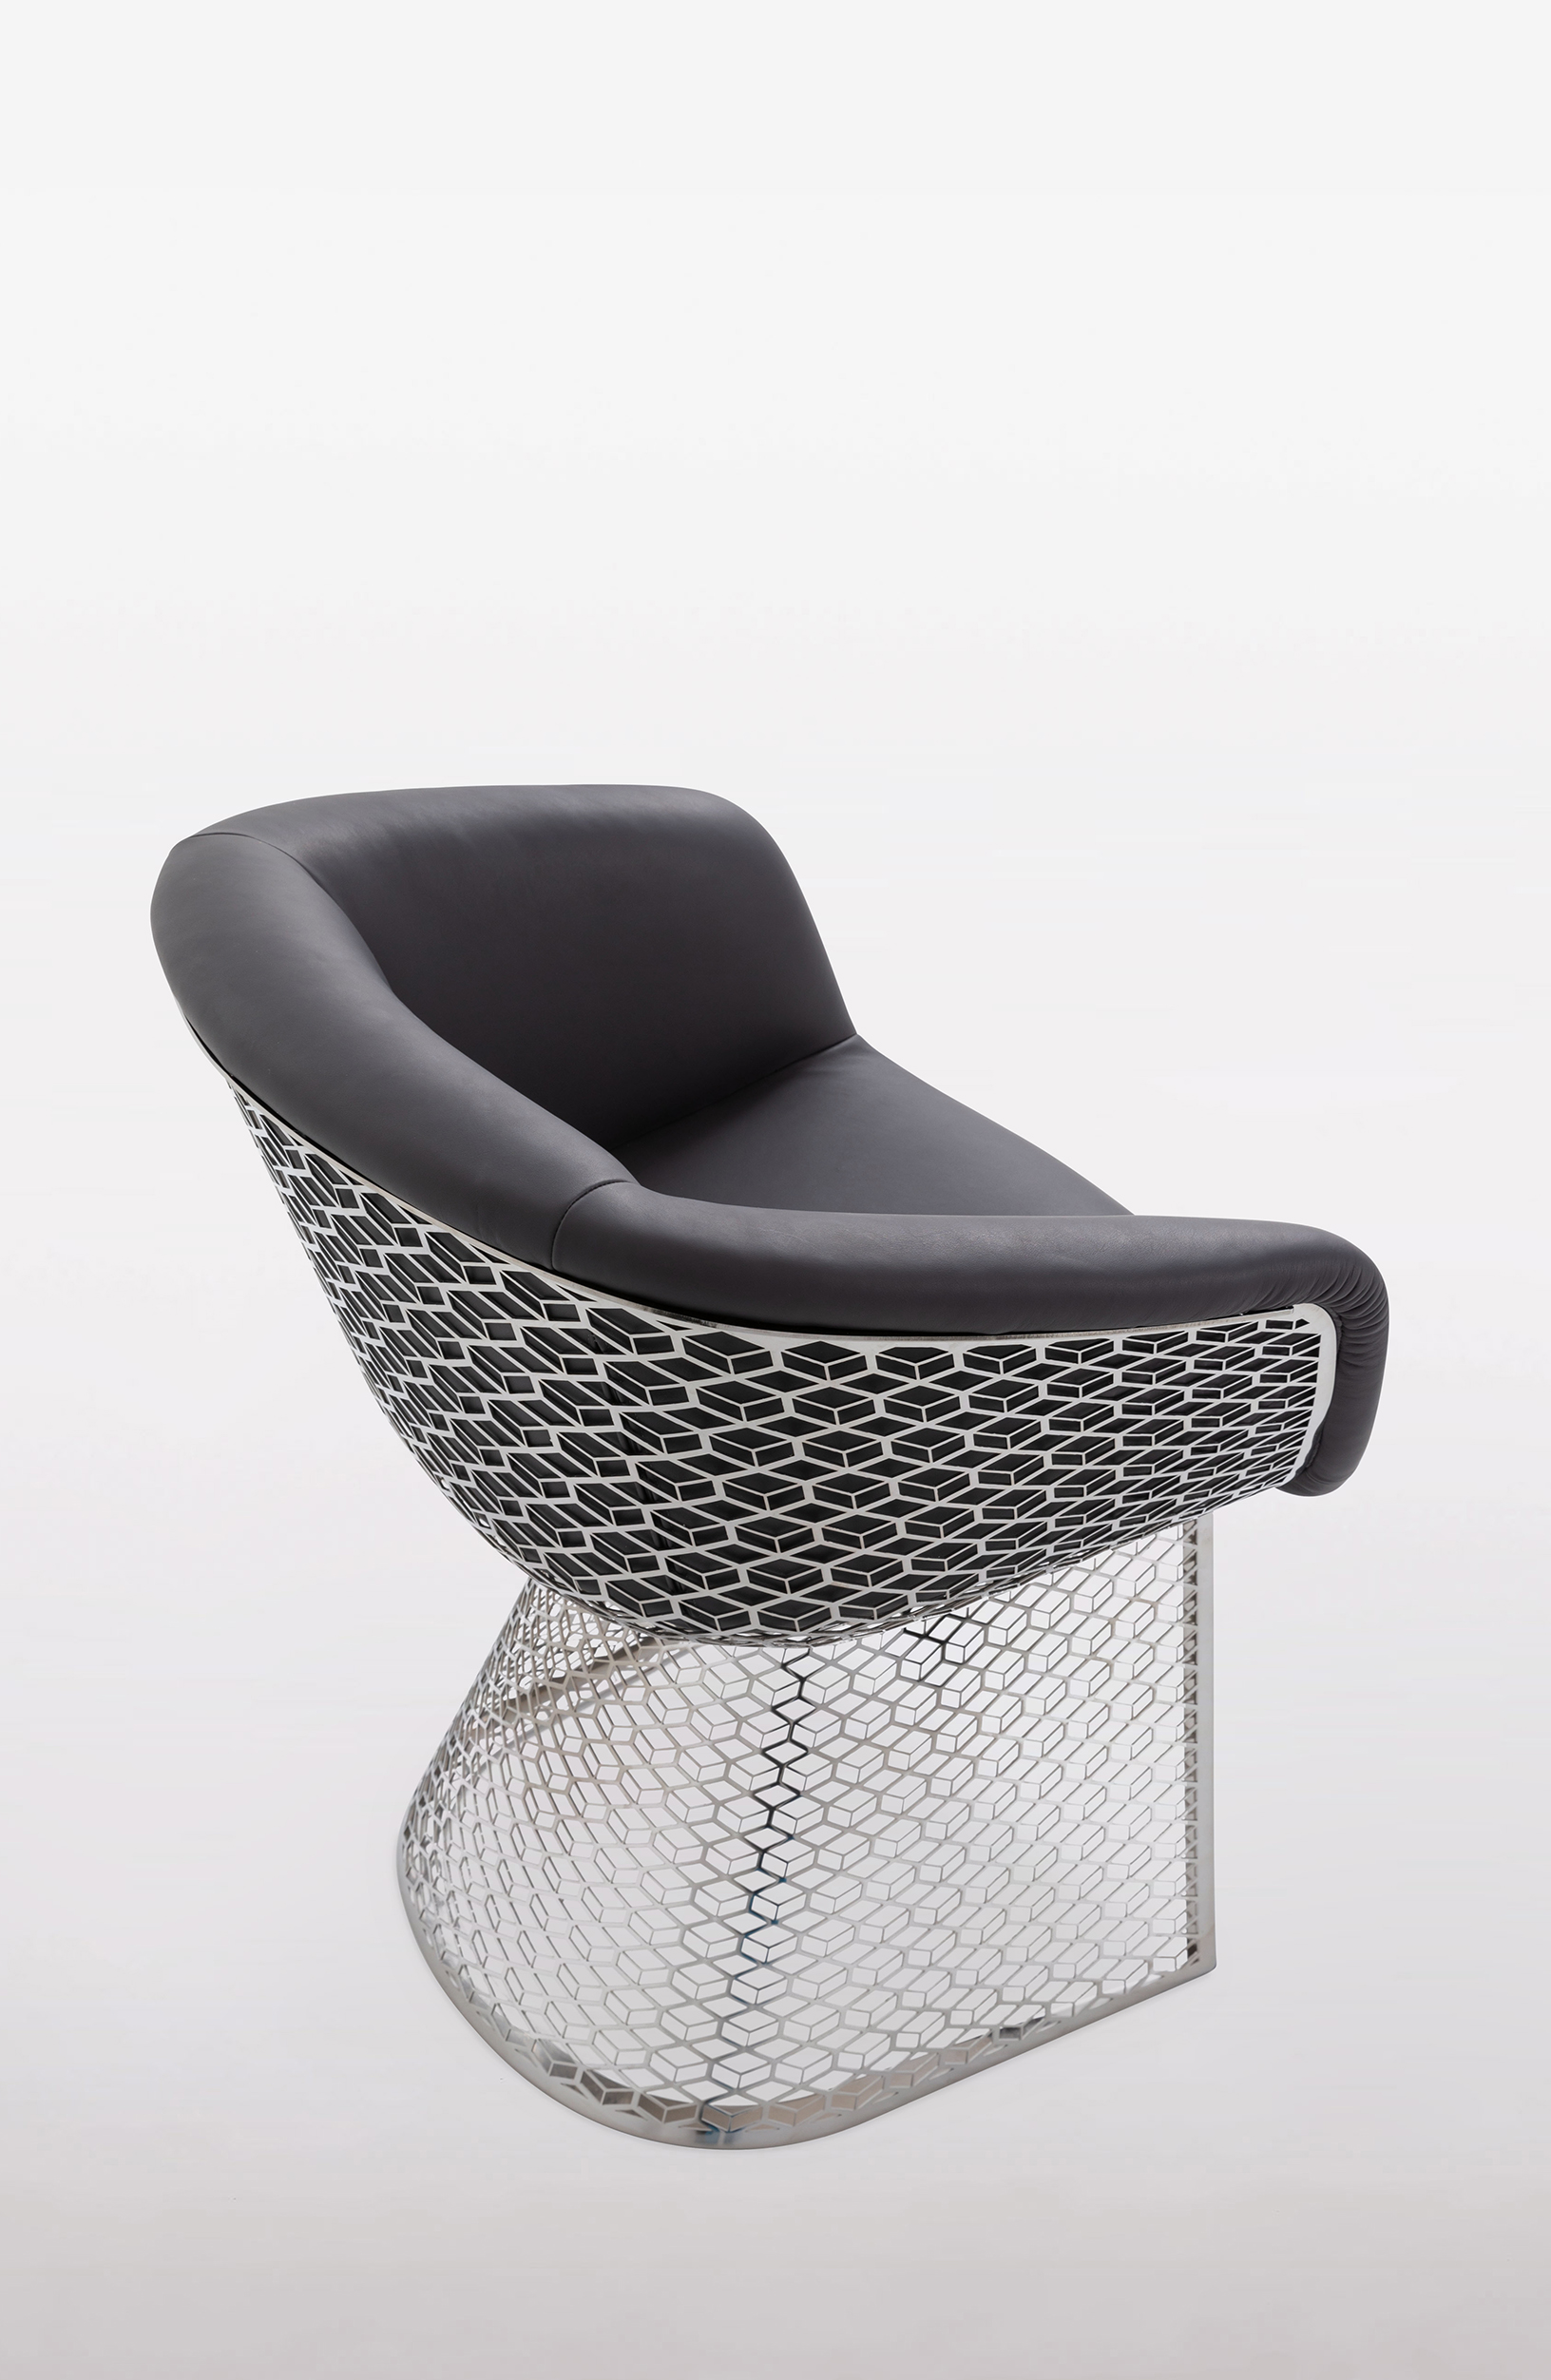 bugatti home-vitesse-sense-chair-03